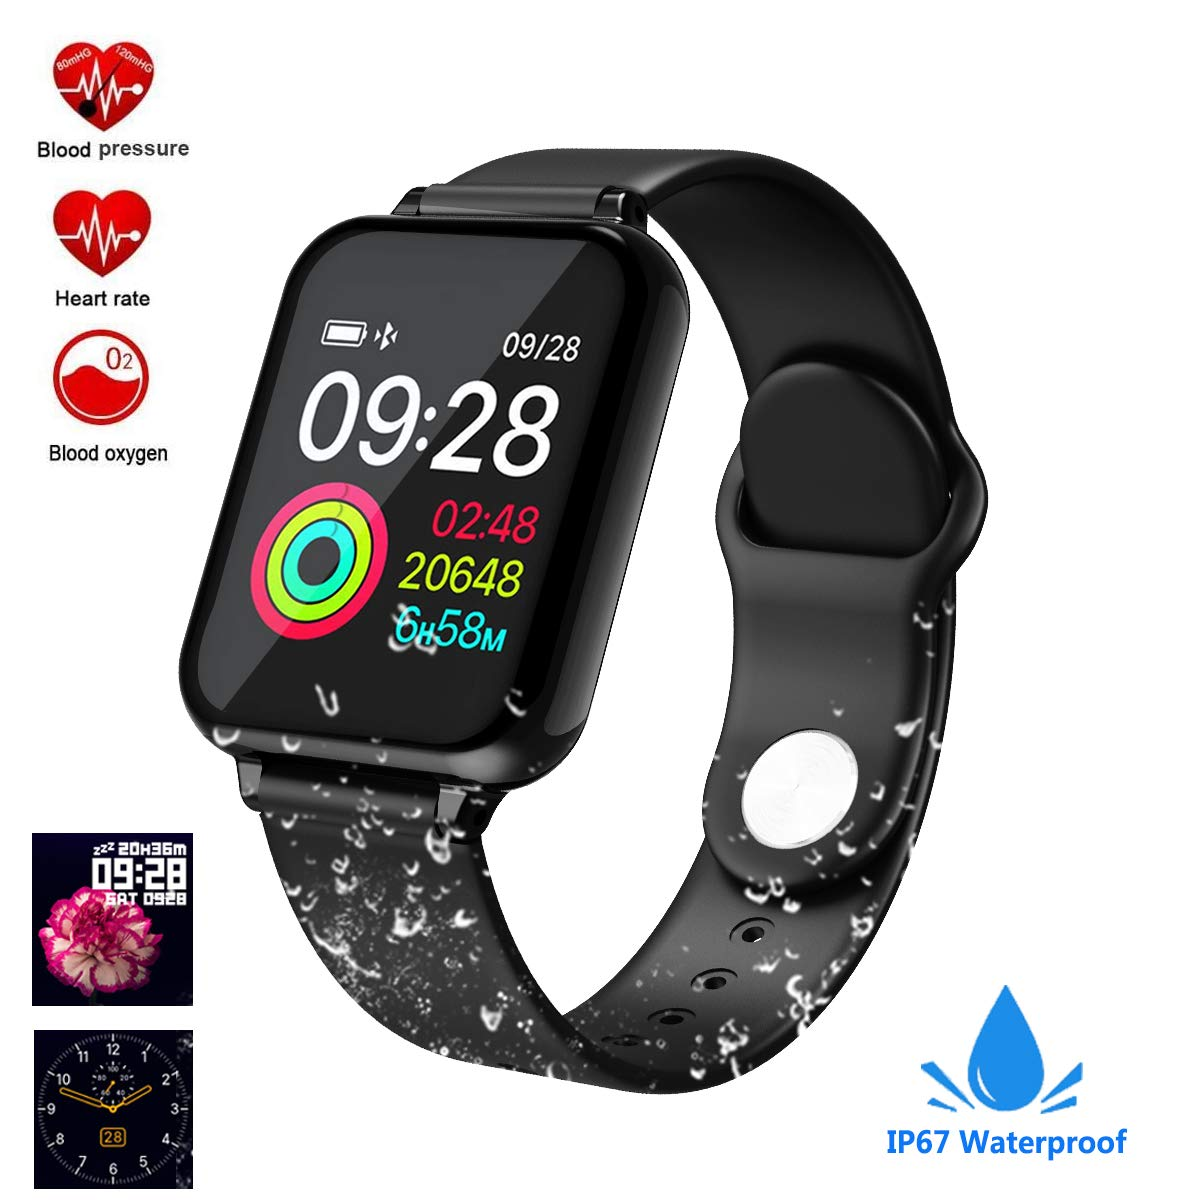 feifuns Smart Watch, Fitness Tracker Activity Tracker with Heart Rate Monitor 1.3 Color Screen with Blood Pressure Sleep Monitor Step Calorie Counter,IP67 Waterproof Band for Men Women Kids (Black)